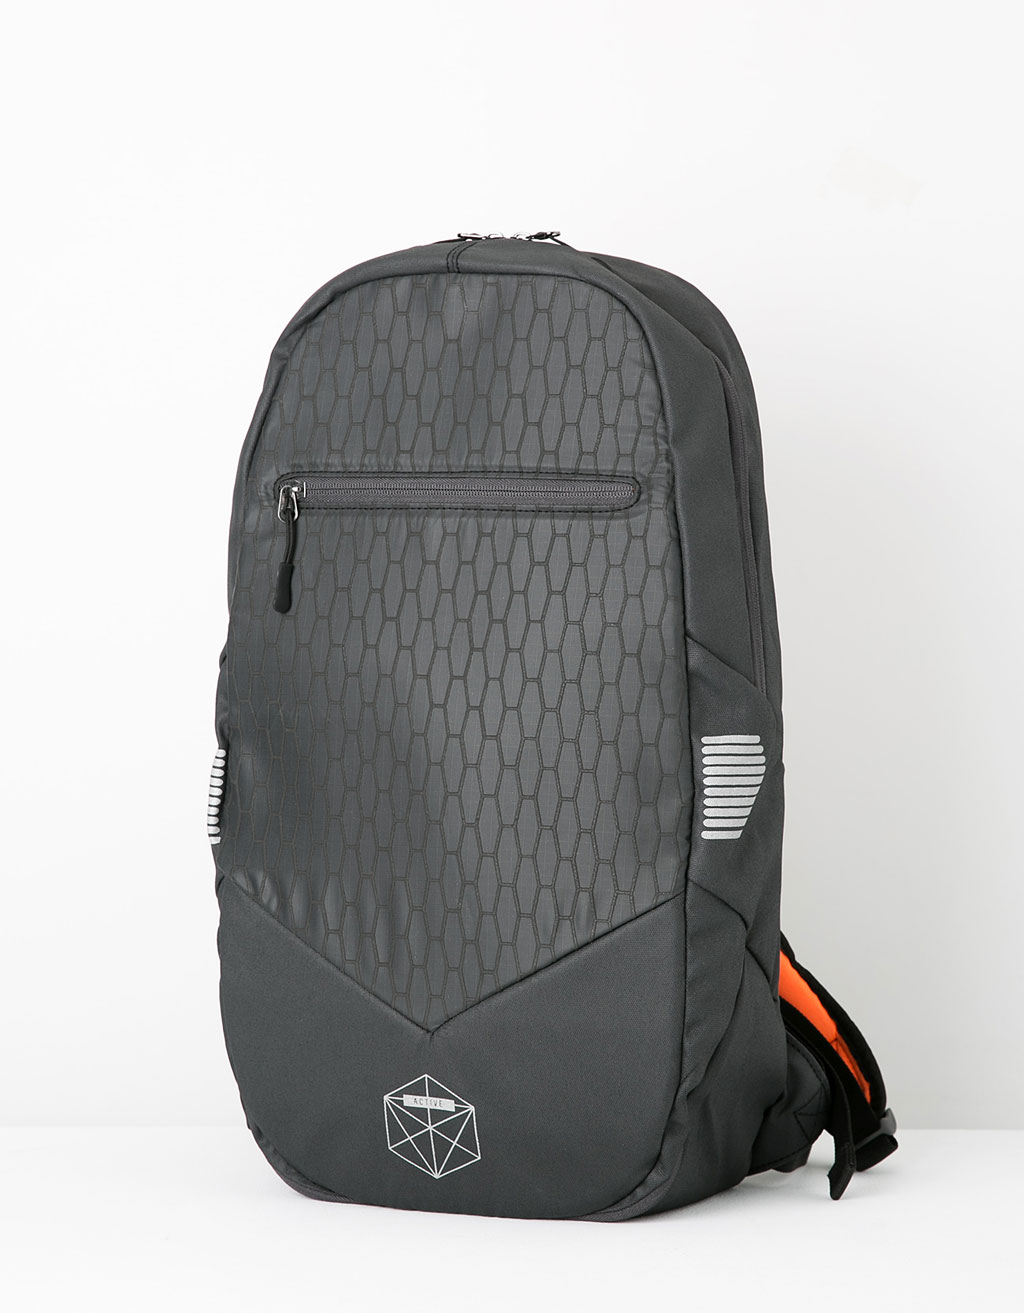 Reflective detail sports backpack